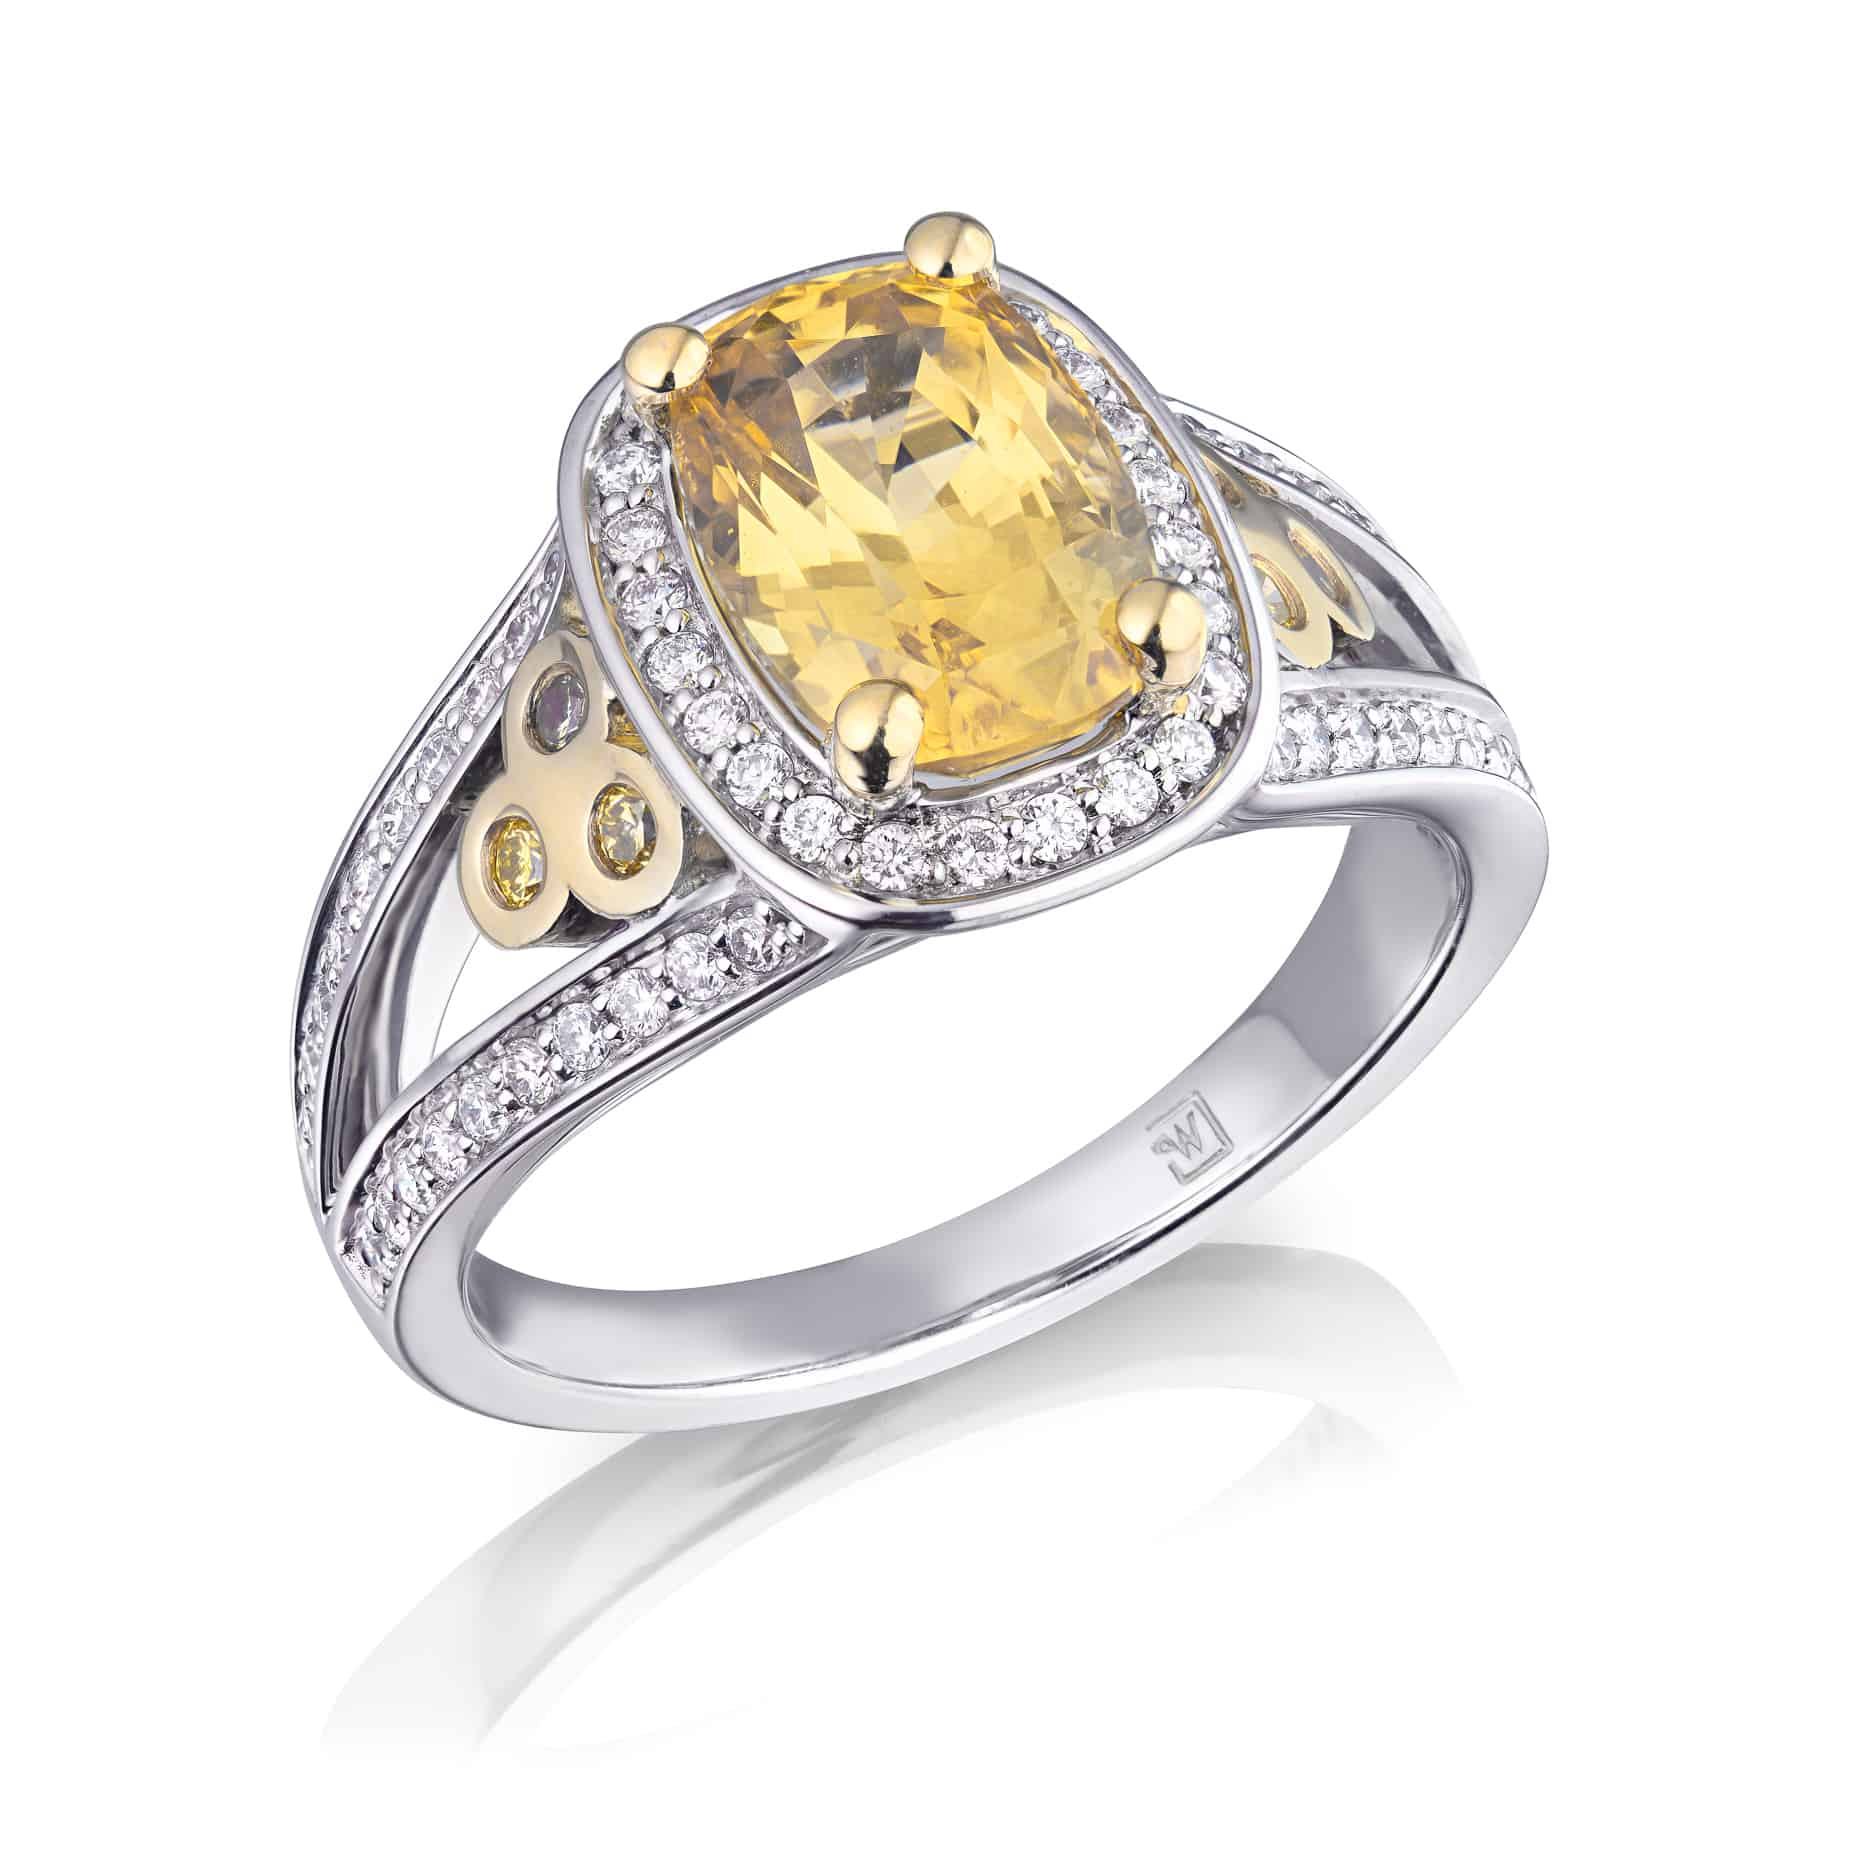 Cushion Sri Lankan Yellow Sapphire & Diamond Halo Ring